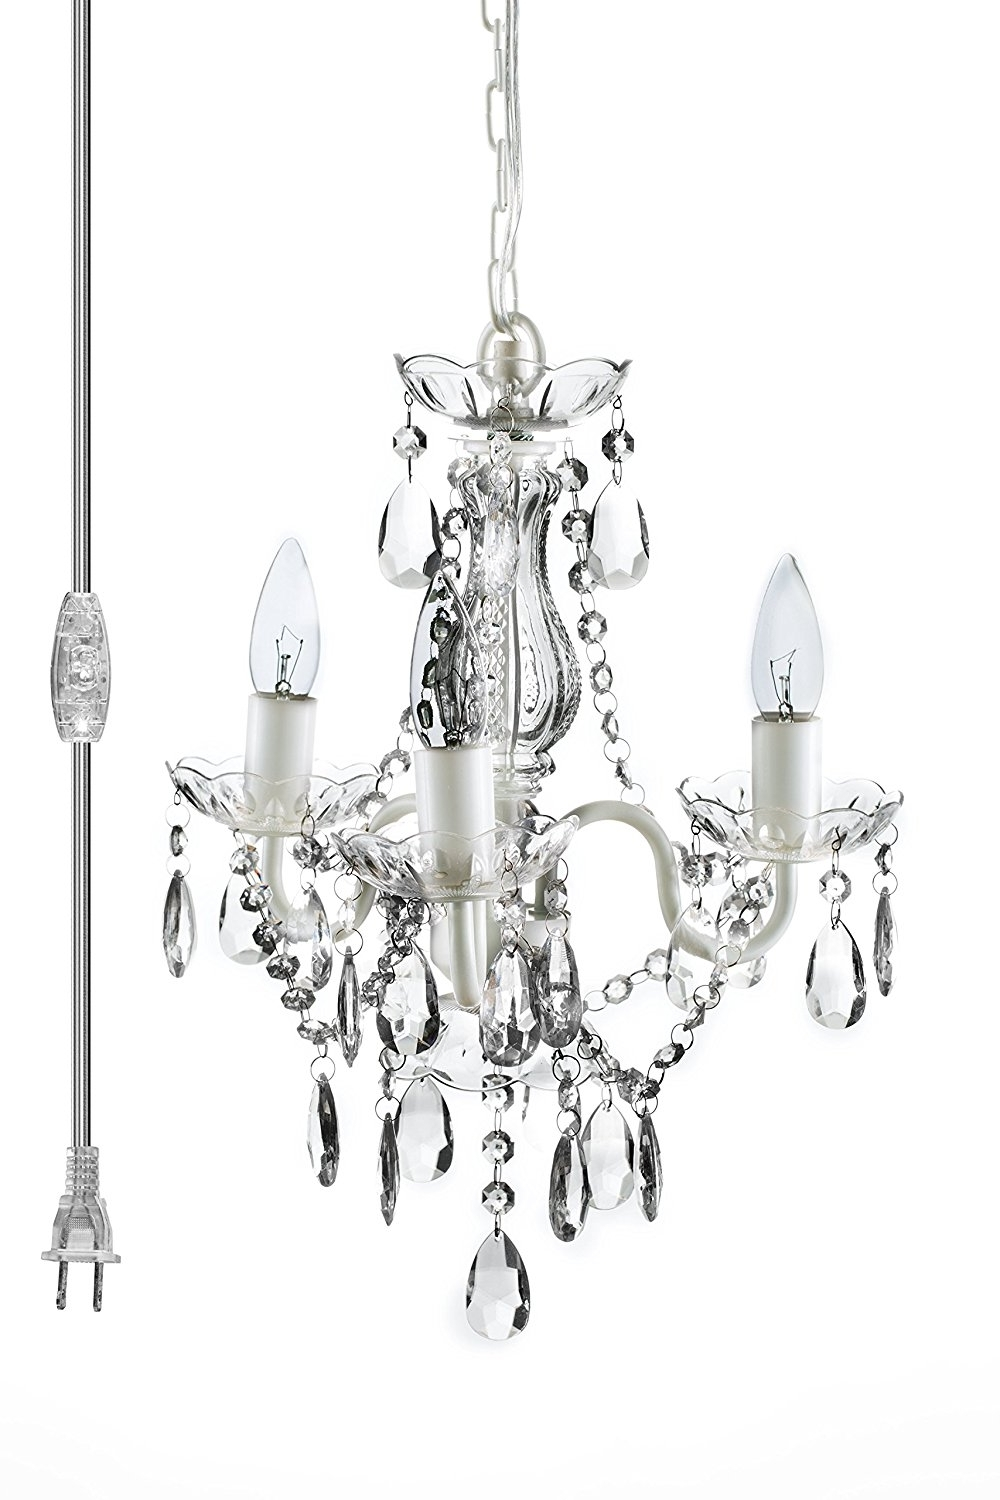 Acrylic Chandelier Lighting Intended For Popular The Original Gypsy Color 3 Light Mini Plug In Crystal Chandelier For (View 4 of 15)